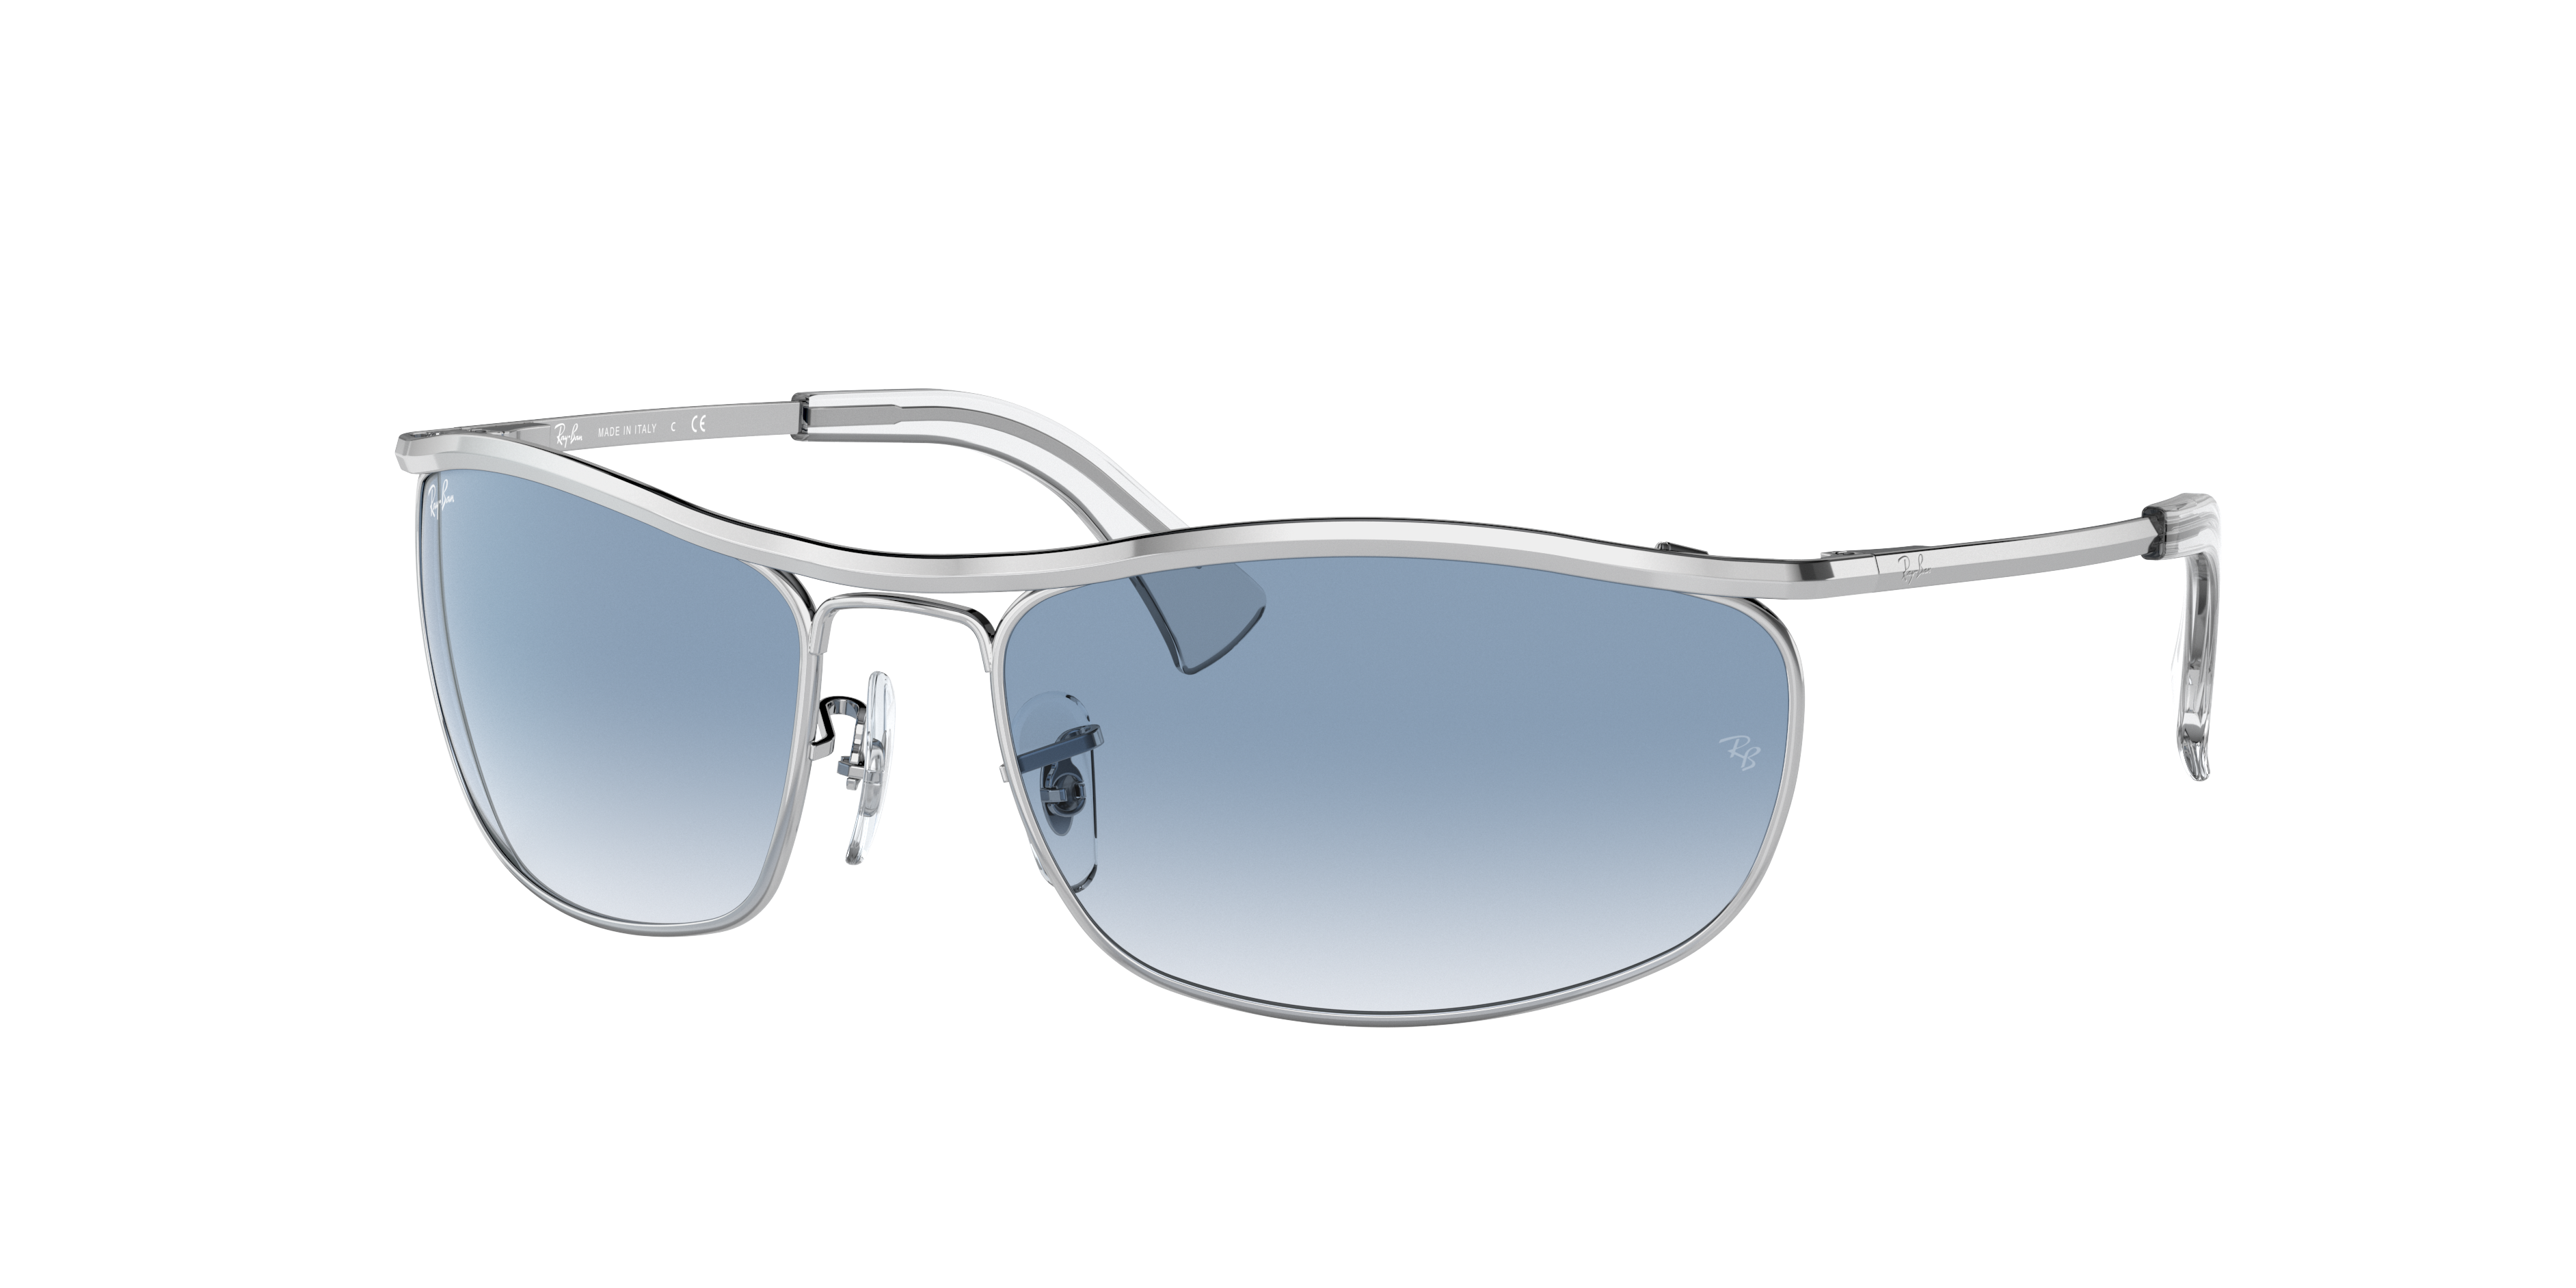 Ray-Ban Olympian Silver, Blue Lenses - RB3119